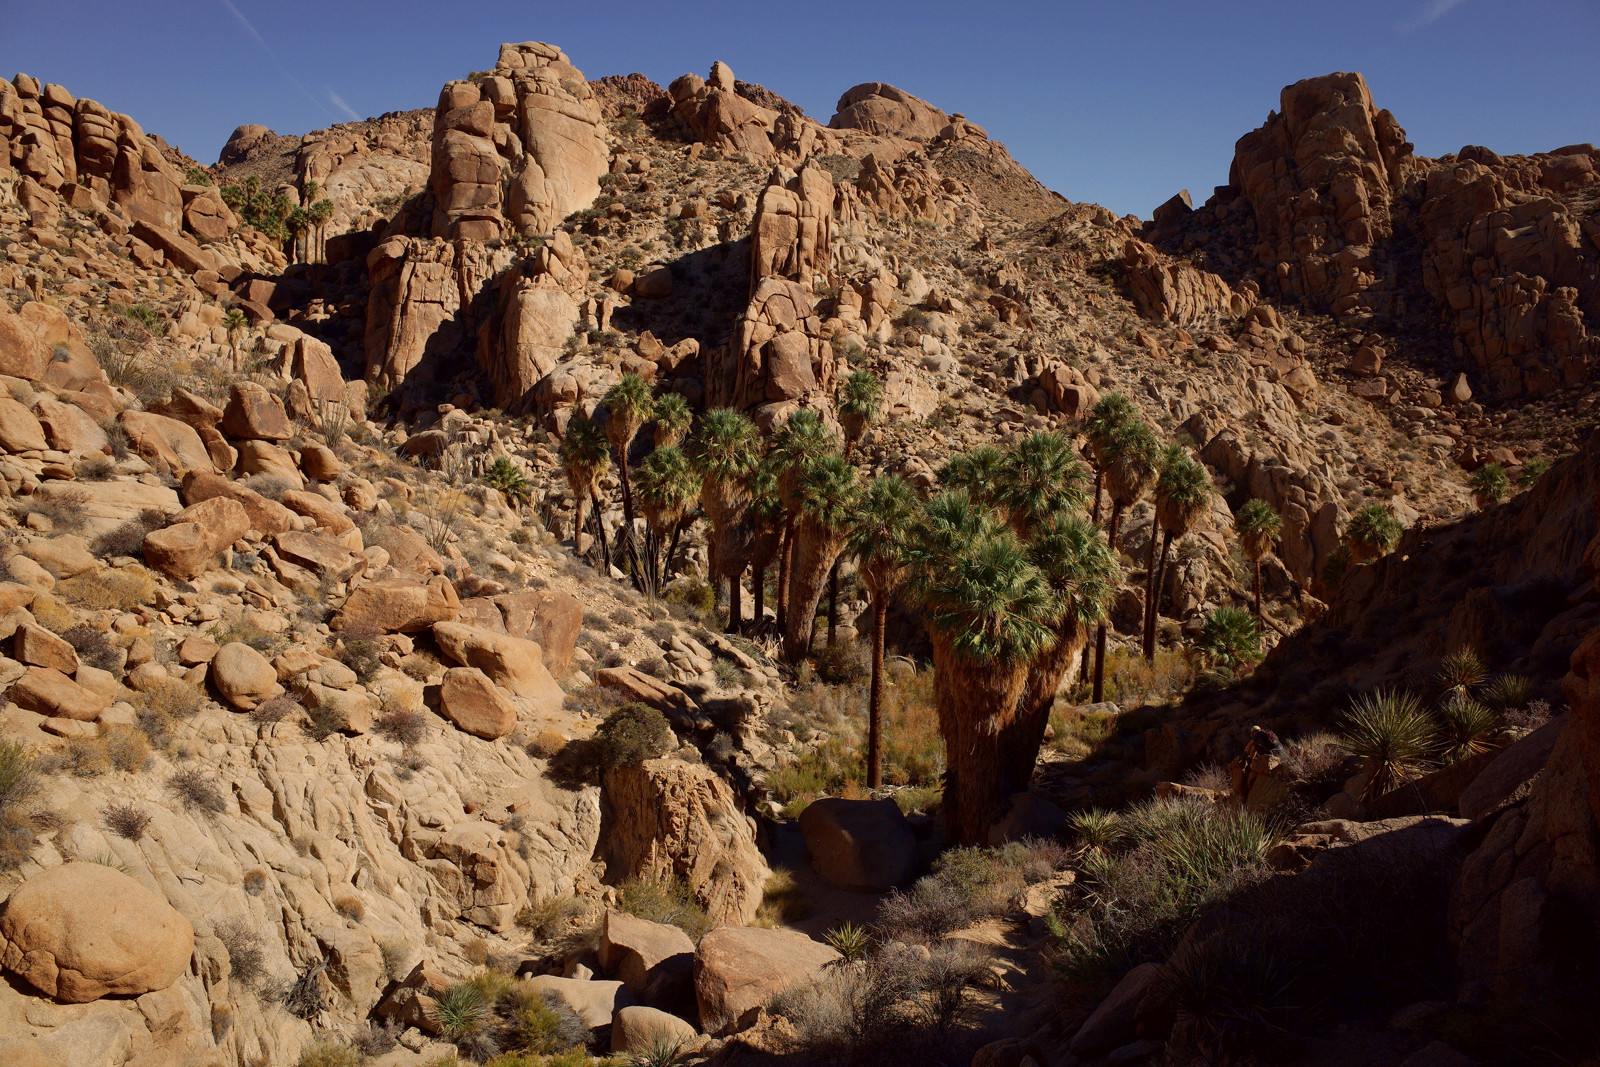 Lost Palms Canyon in Joshua Tree National Park